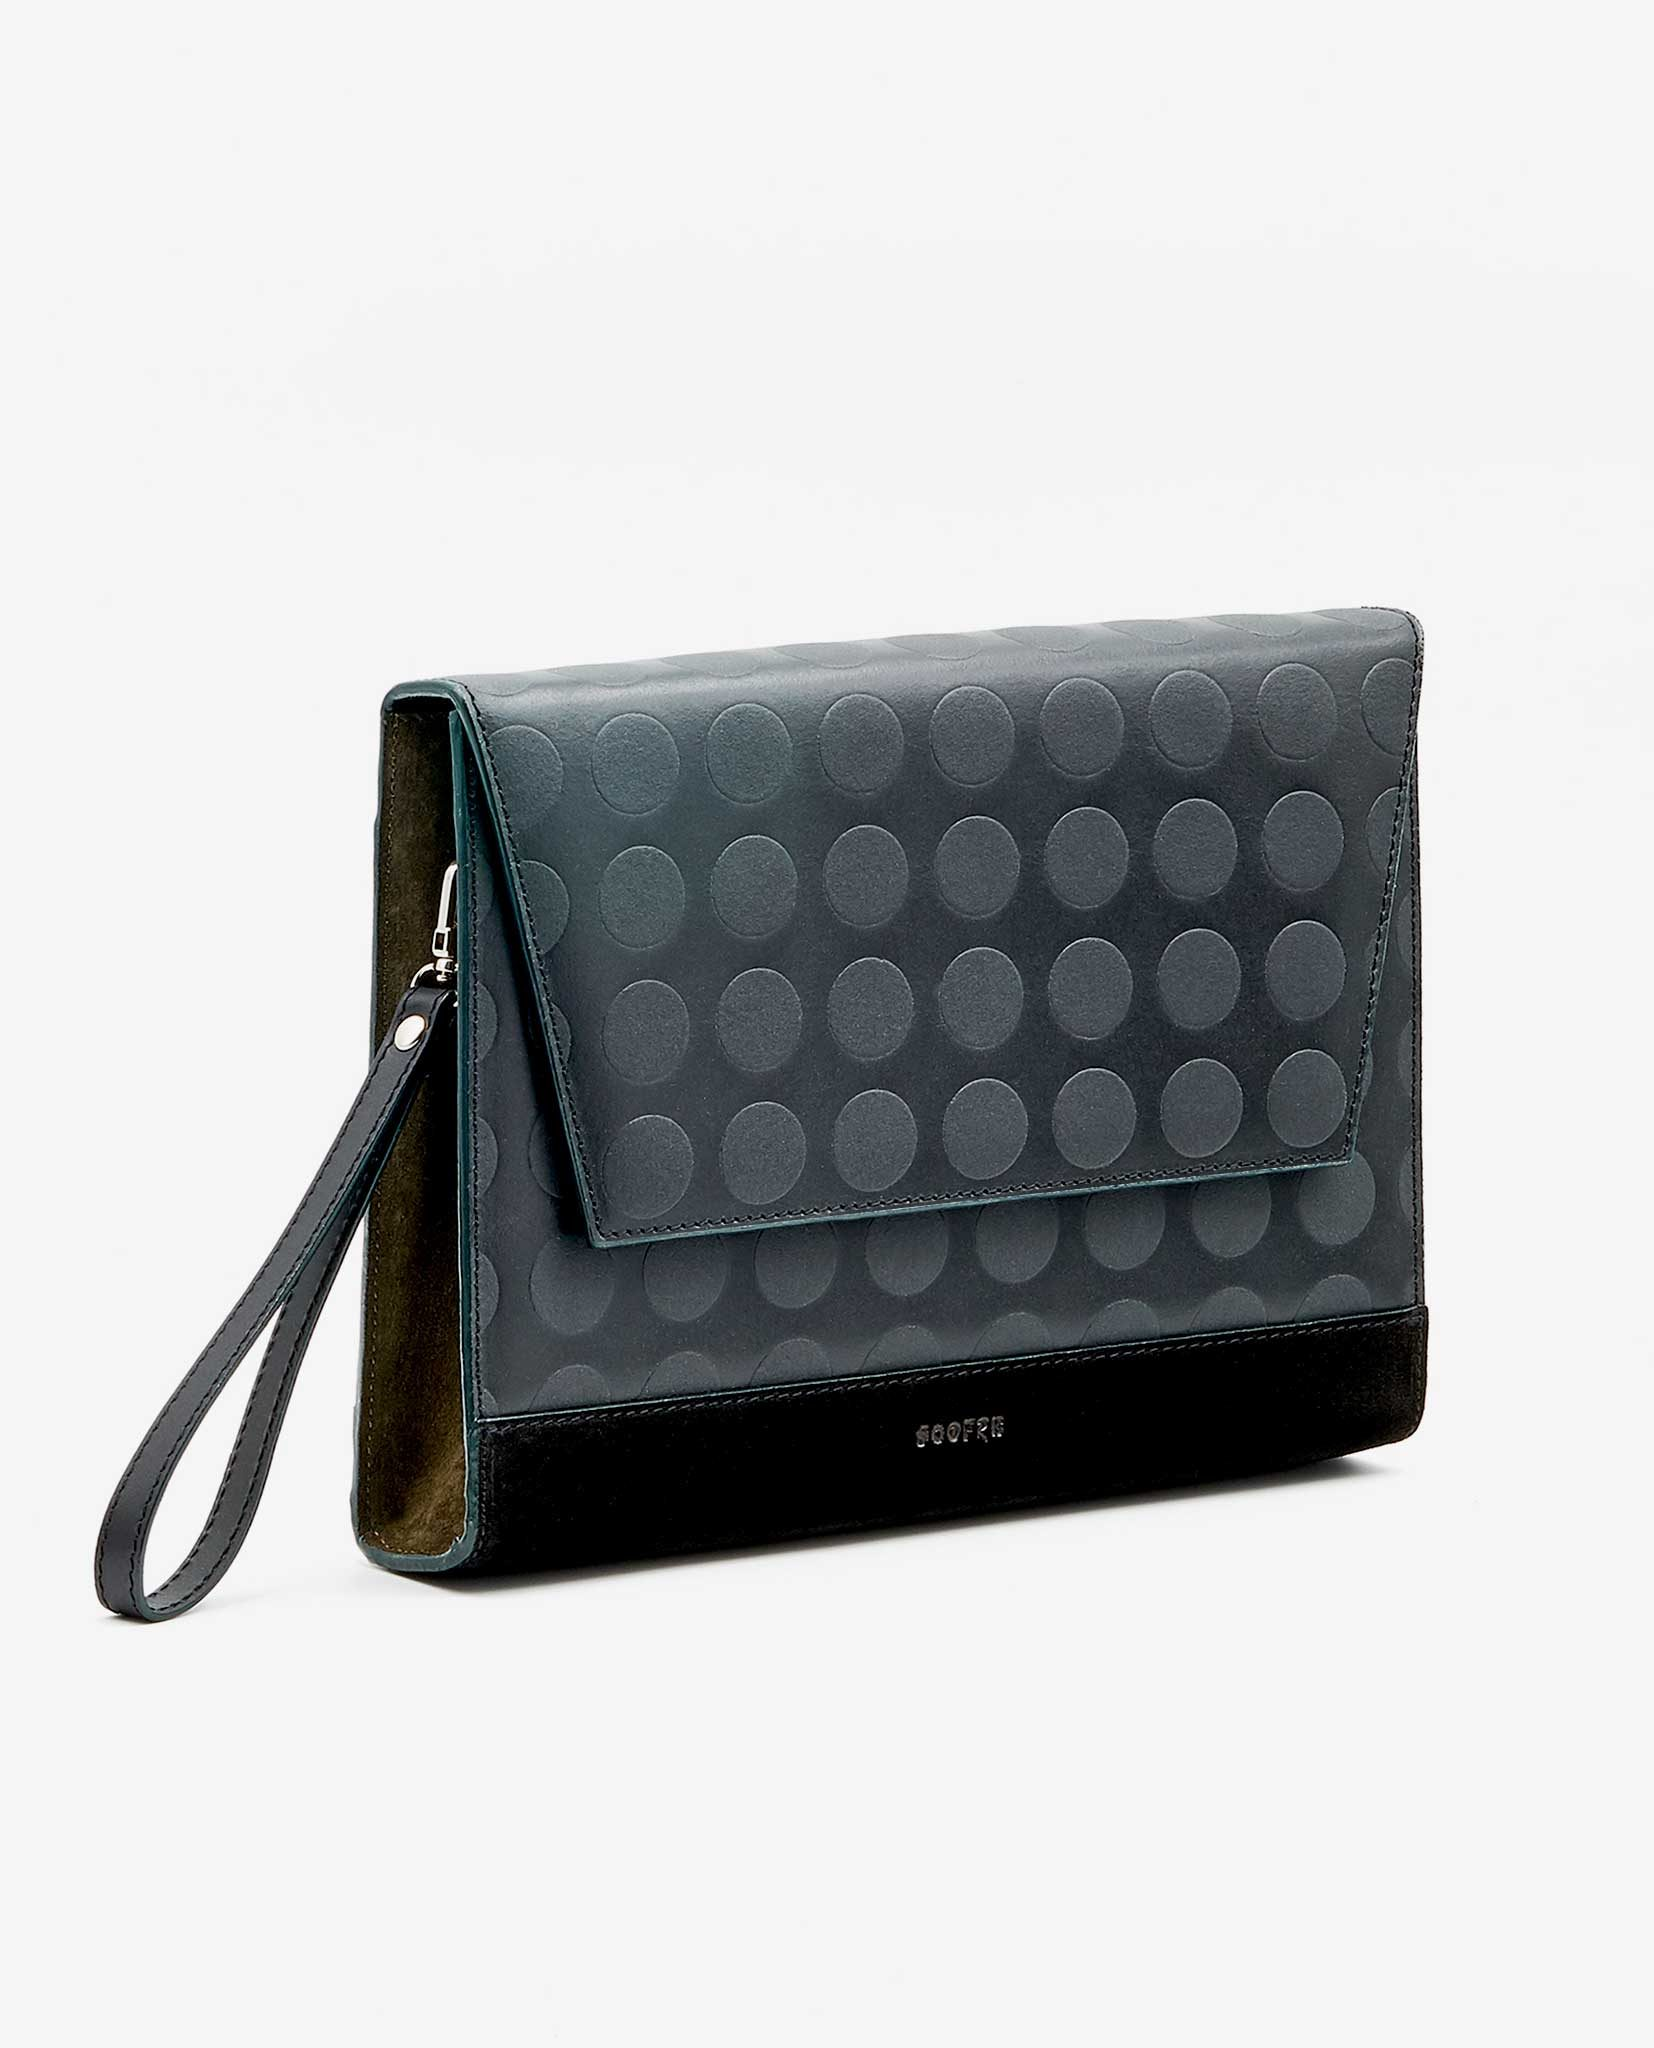 SOOFRE Berlin unique Clutch dotted black khaki